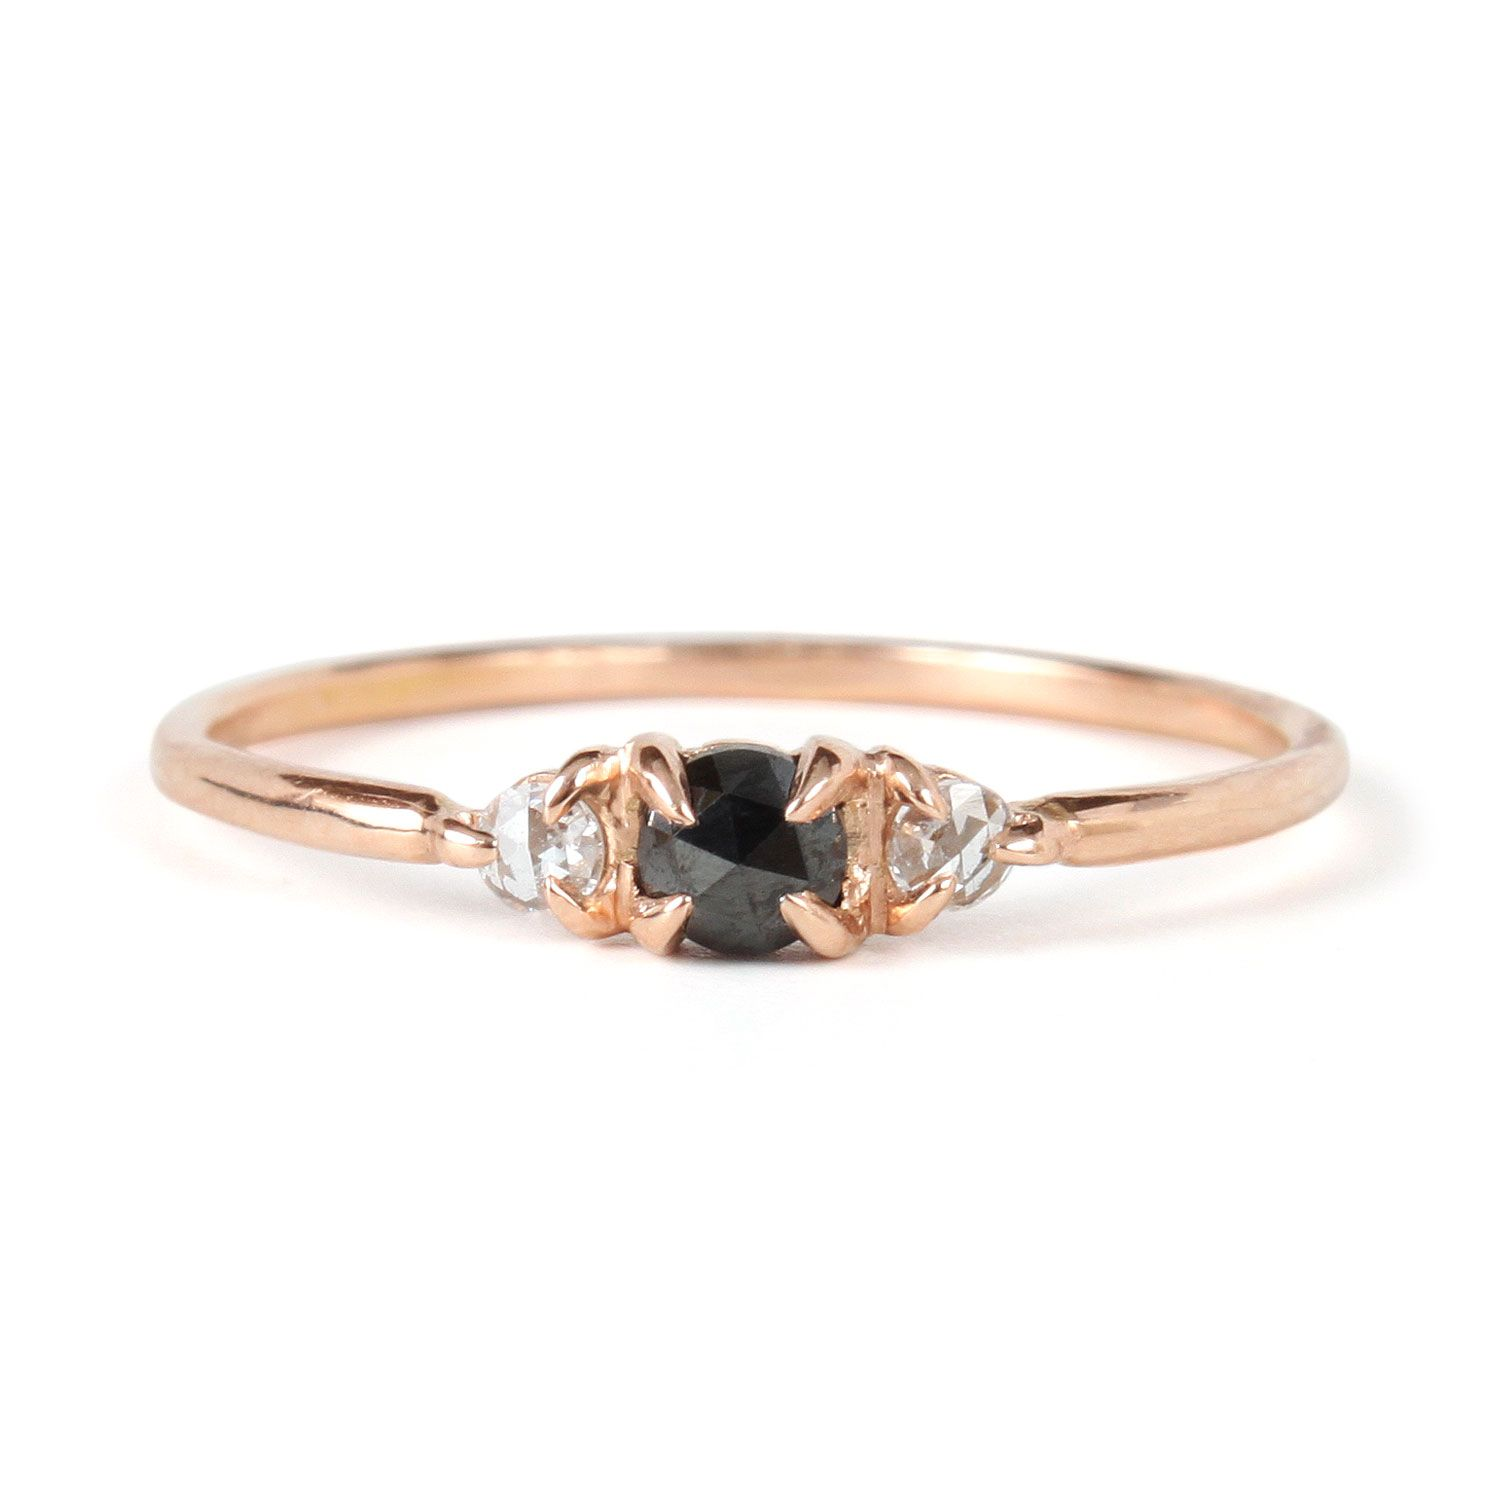 diamond love complex co engagement to look our perfect rings and settings bands home banner represent find the gabriel that you sapphire subtle sparkling your range ensuring from blue